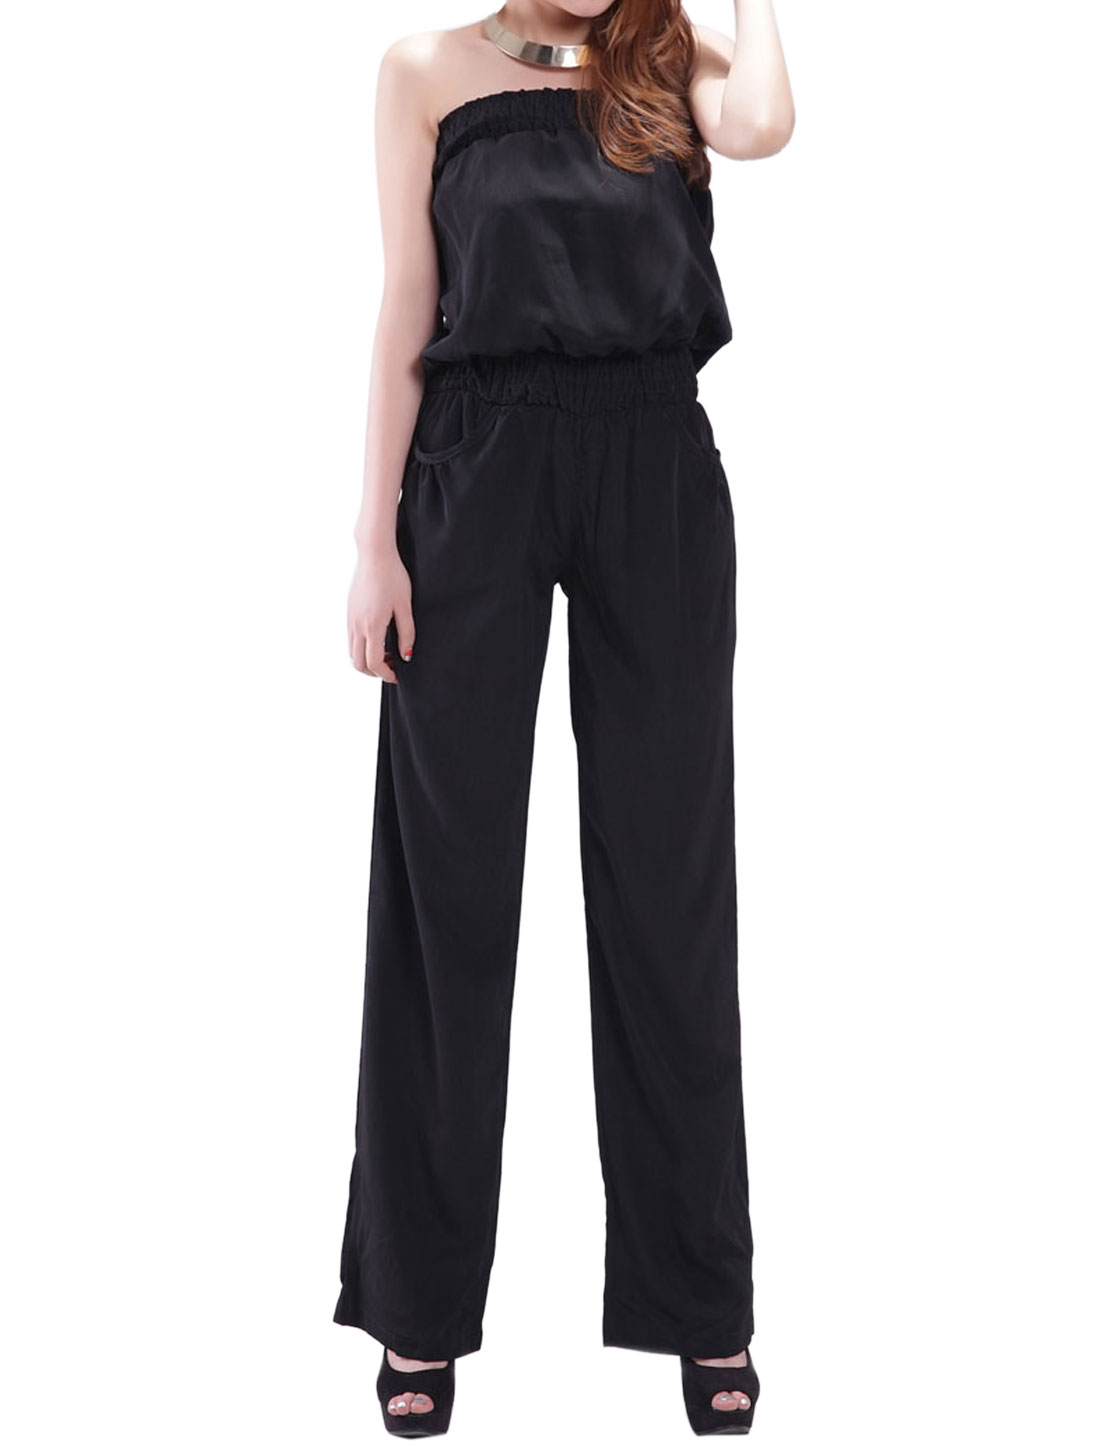 Ladies Leisure Slanting Pockets Elastic Bust Black XS Tube Jumpsuit